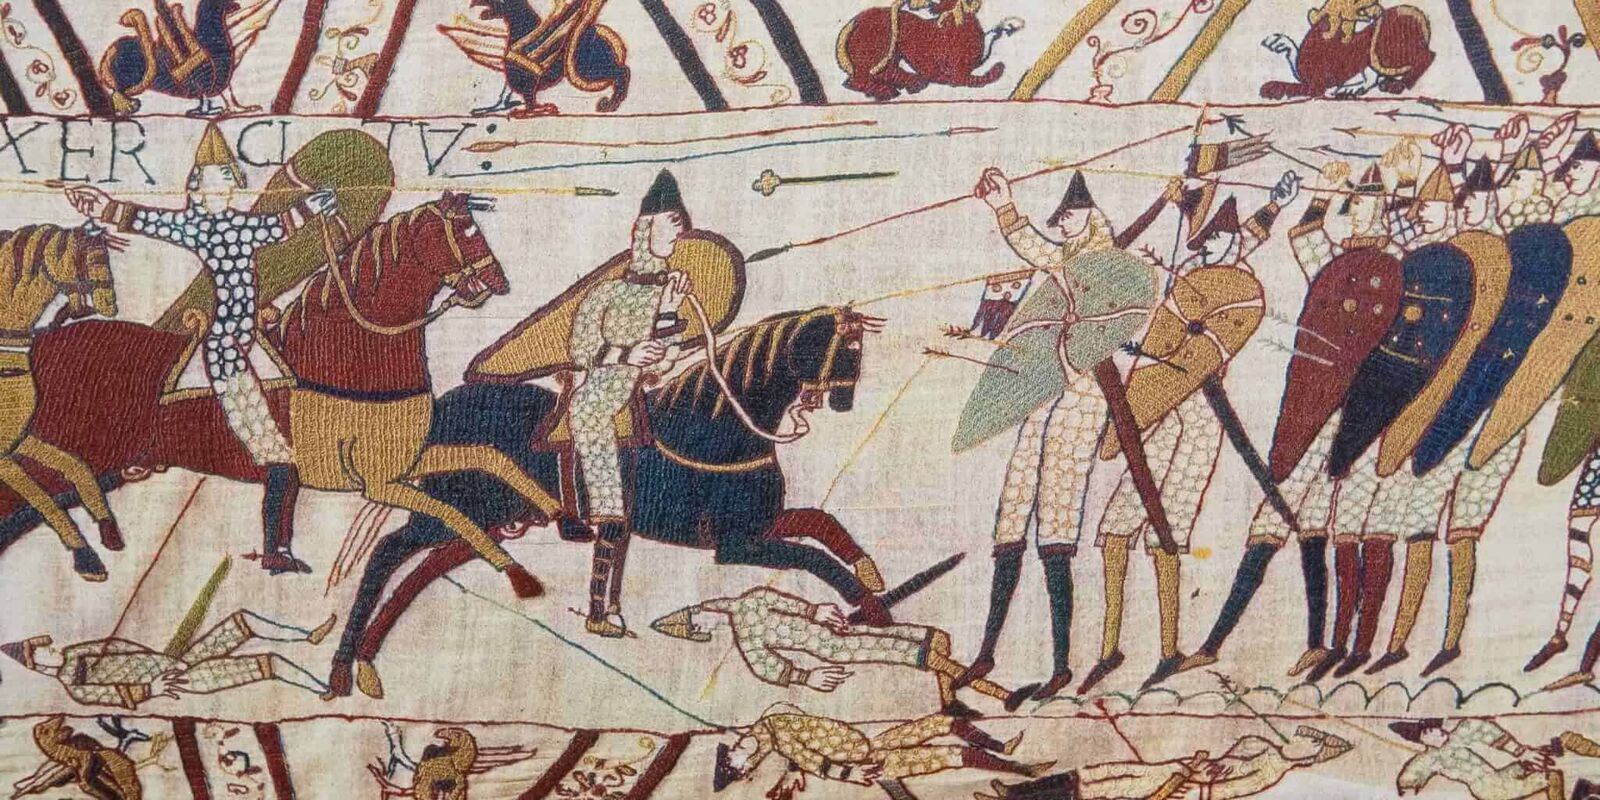 A rough day at the office in the Year 1066